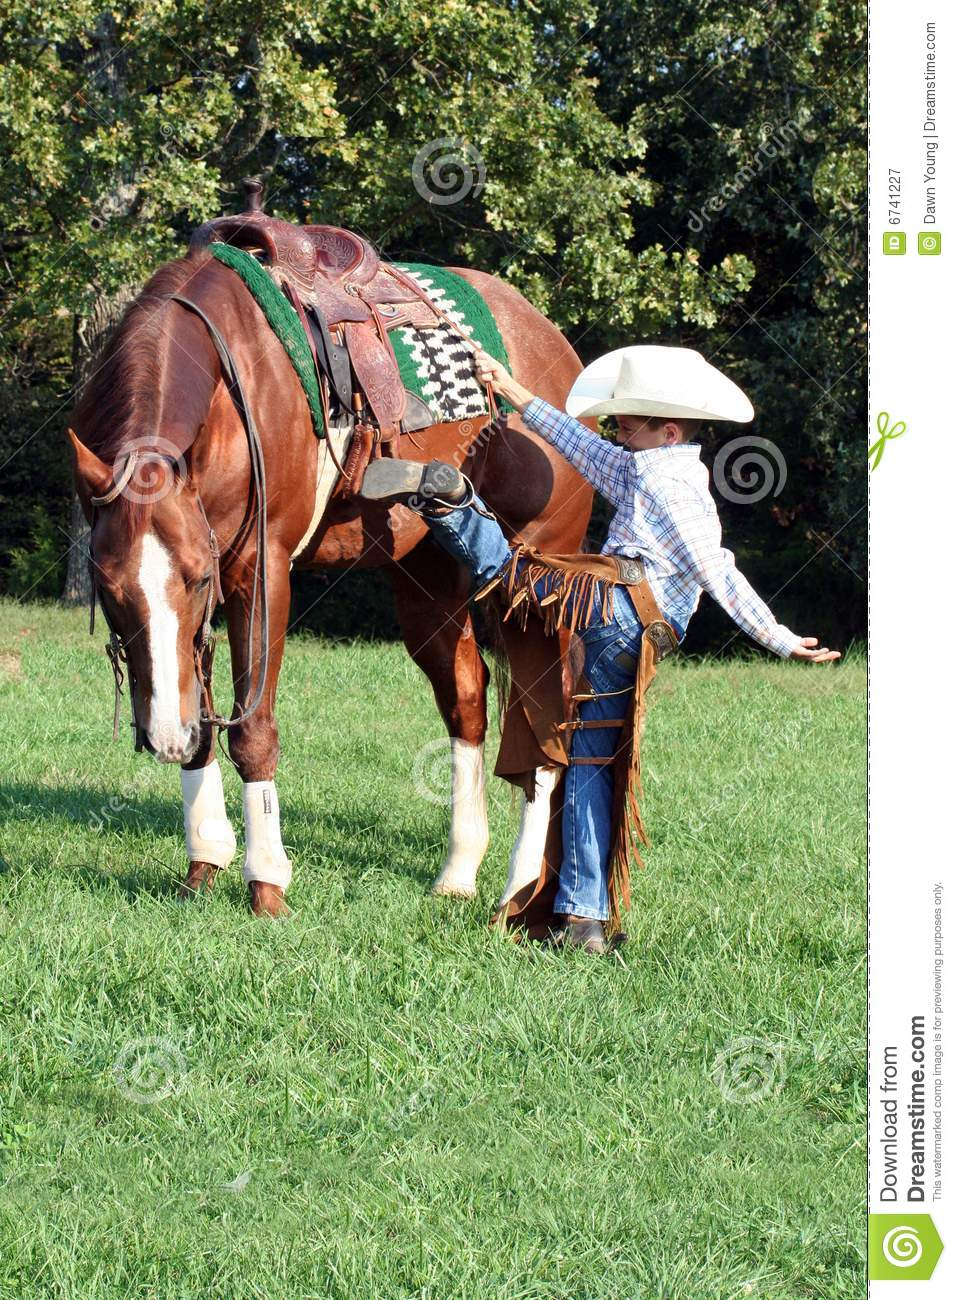 Young cowboy mounting horse